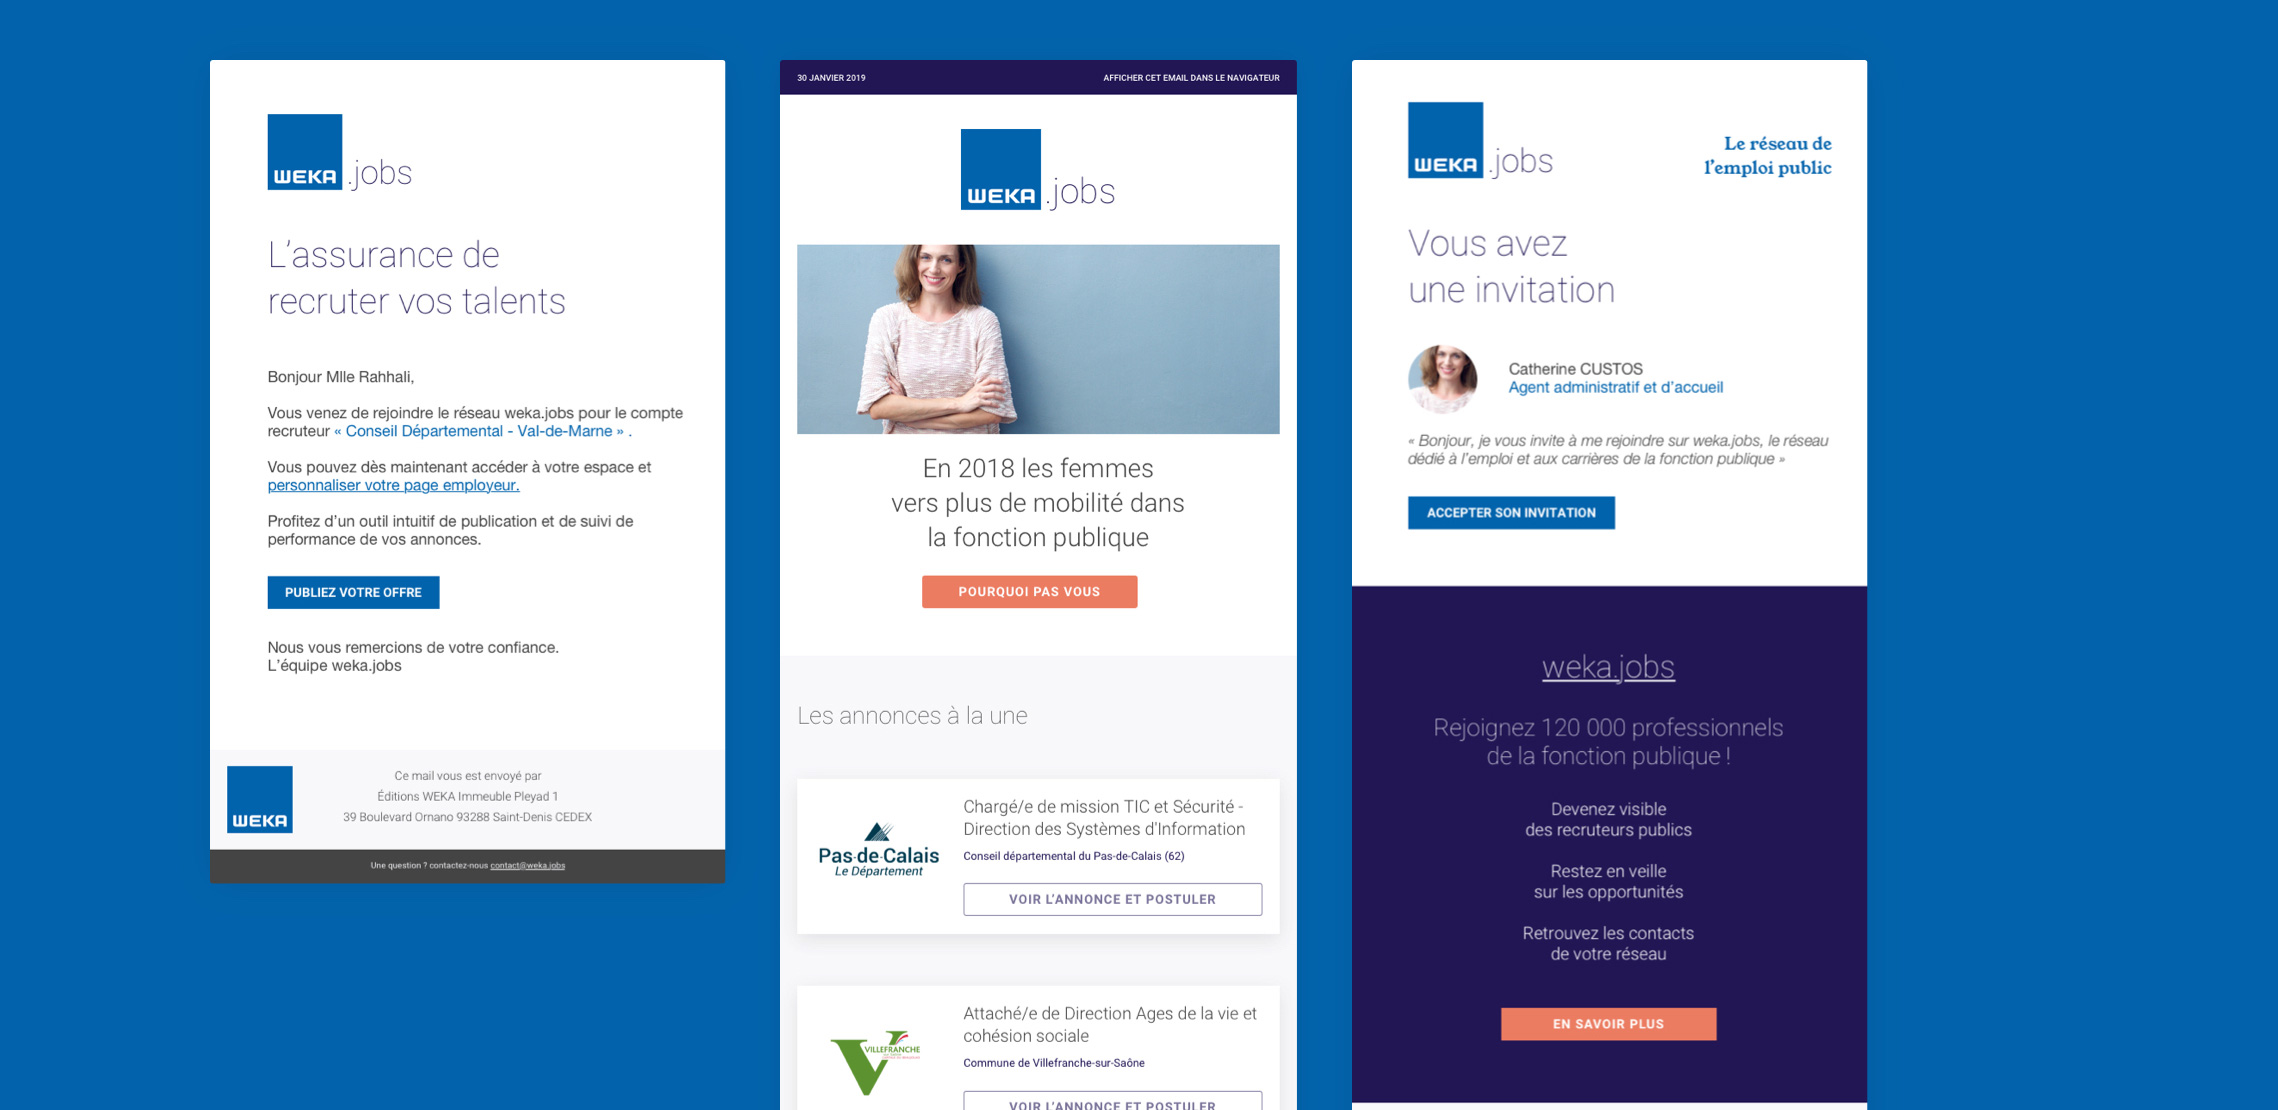 Images des newsletters Weka.jobs